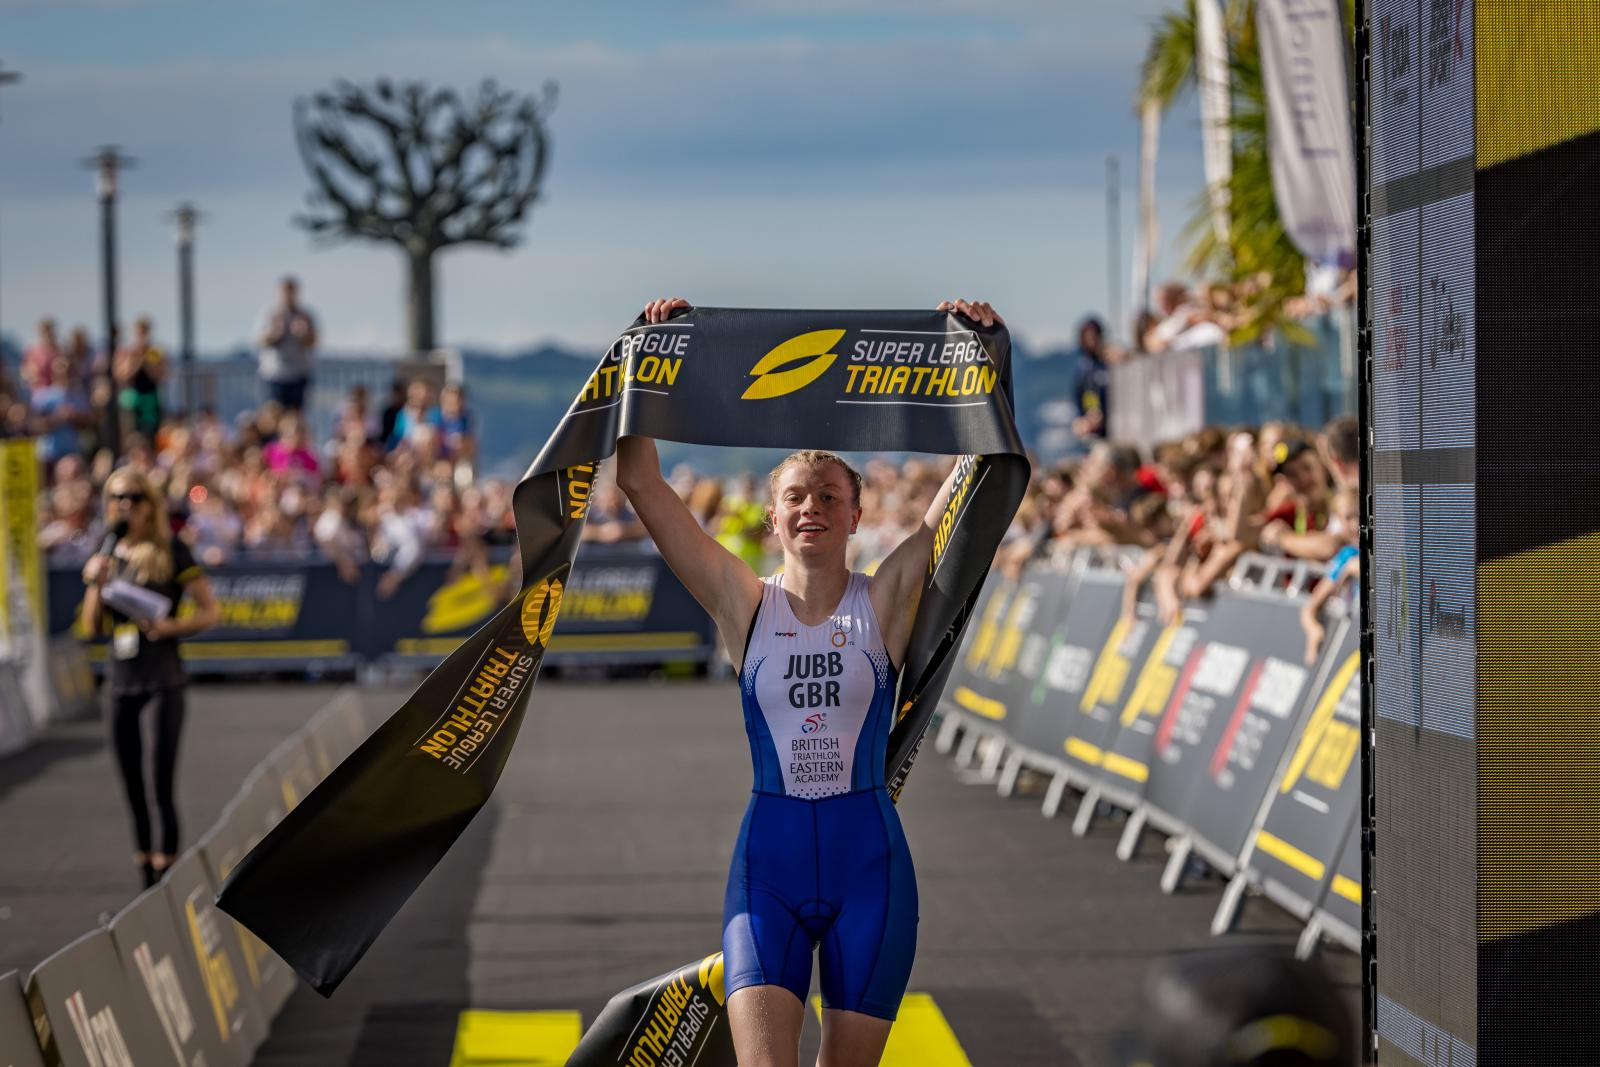 St Columba's student wins youth triathlon titles - Diocese of Westminster